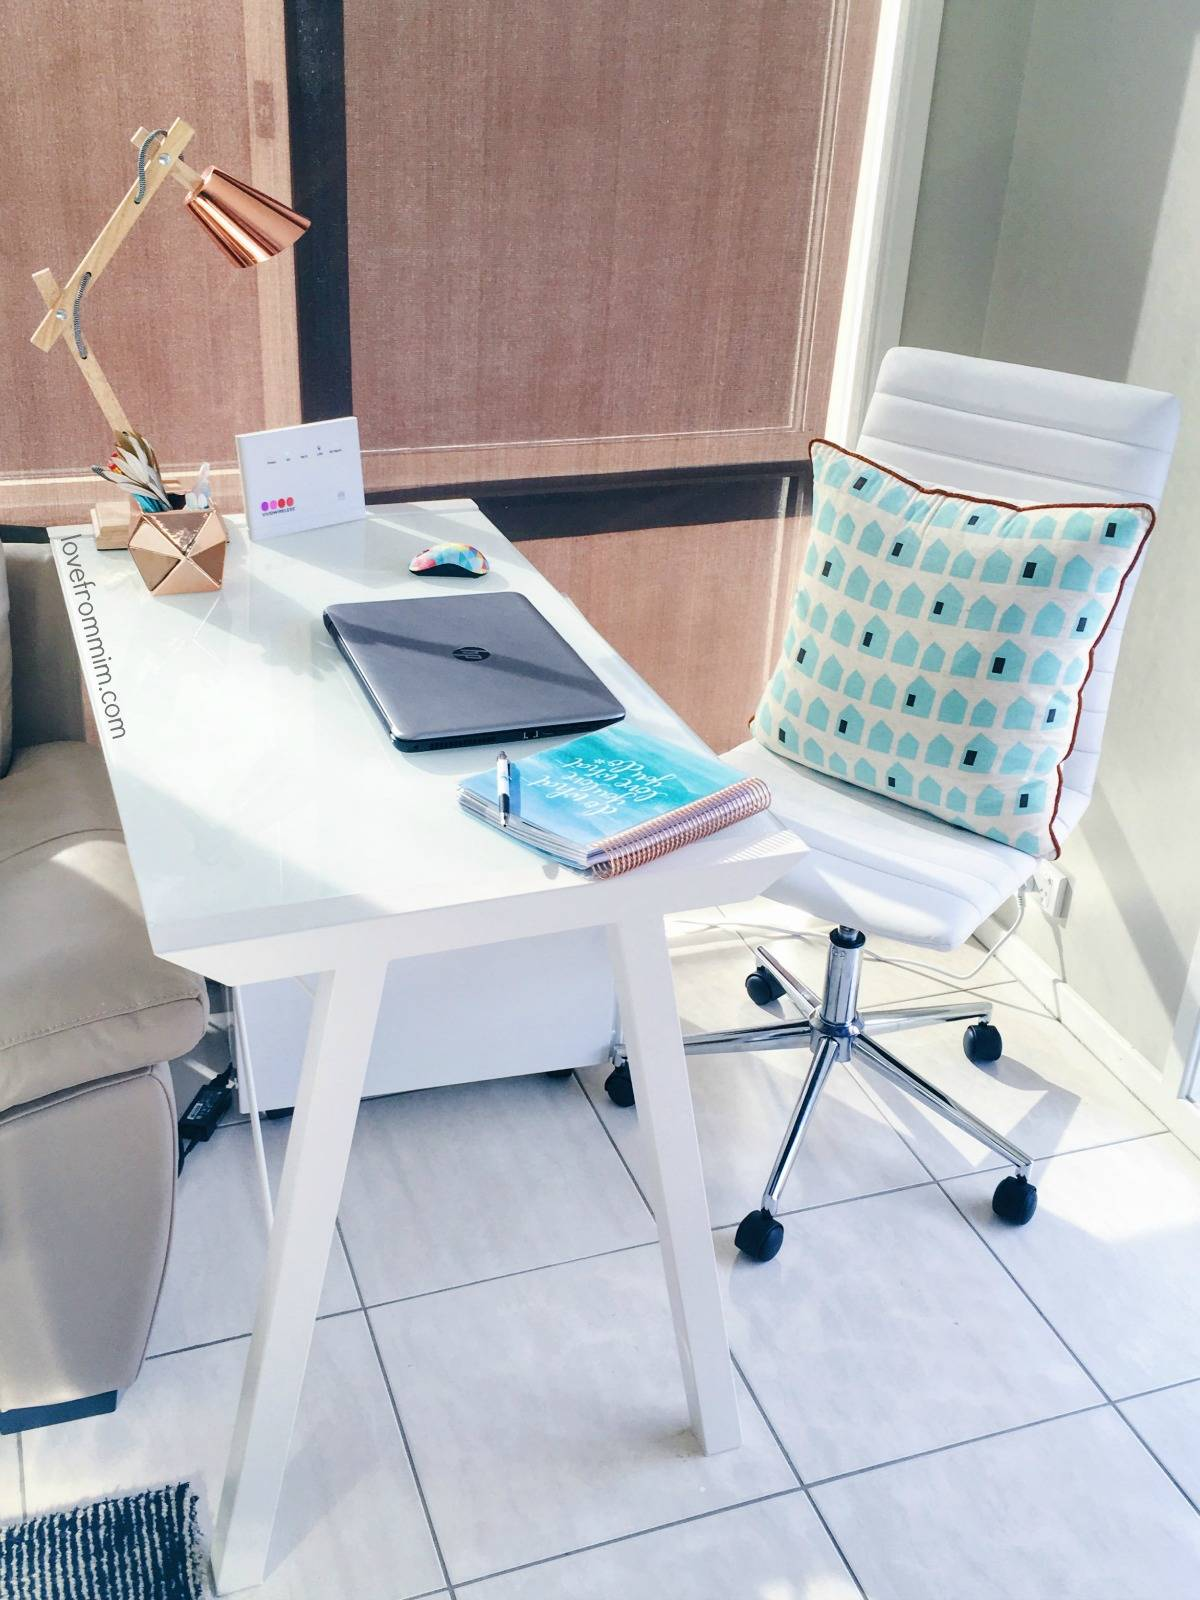 My Home Office Workspace - lovefrommim.com Home Office Tour Desk Tour Bloggers Workspace Bloggers Home Office Mummy Blogger Lifestyle Blogger